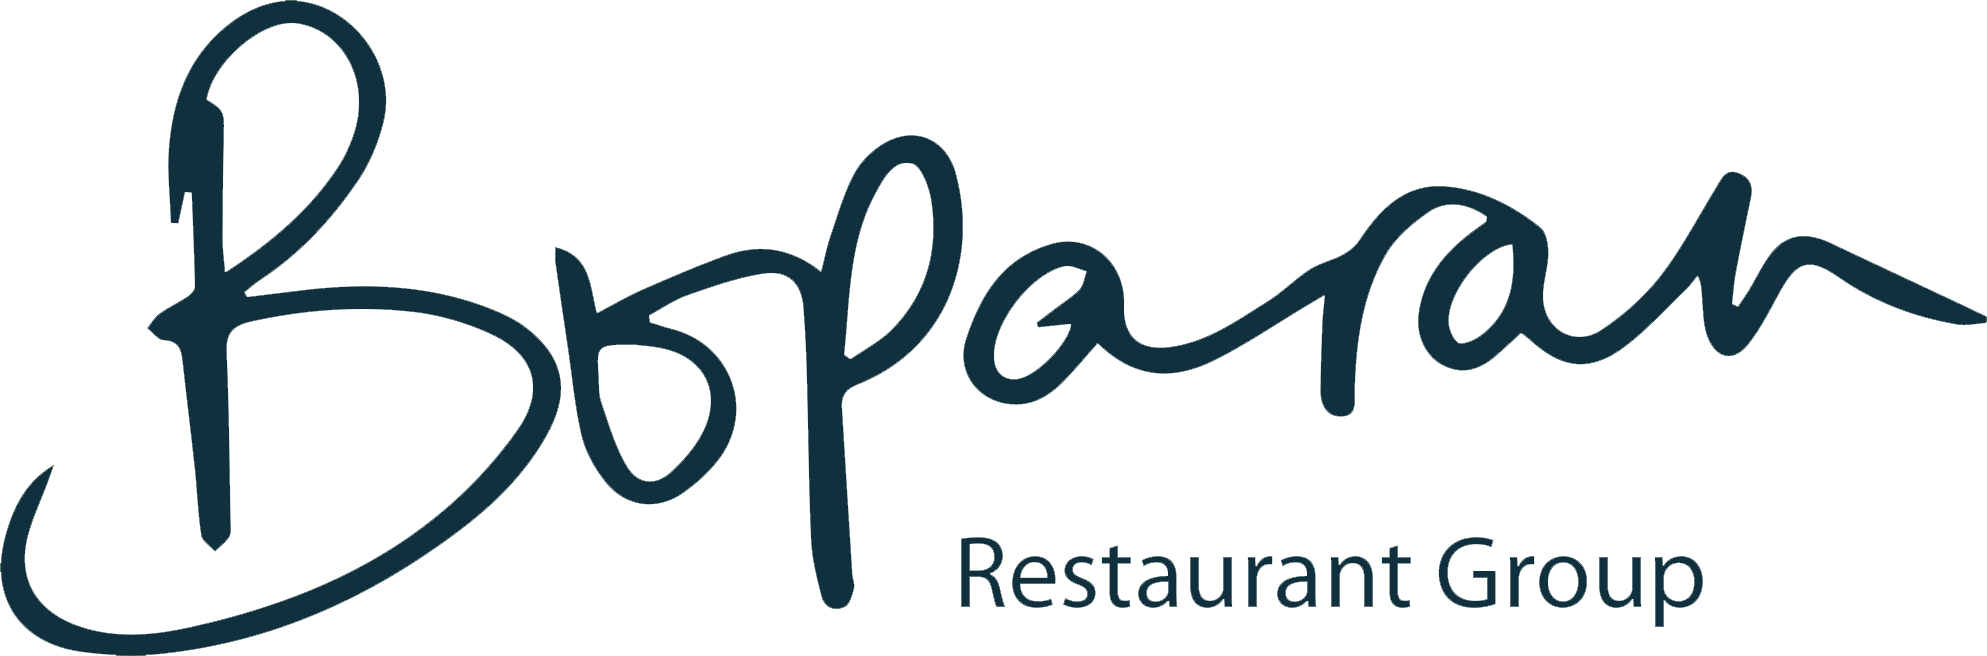 Boparan - Restaurant Group